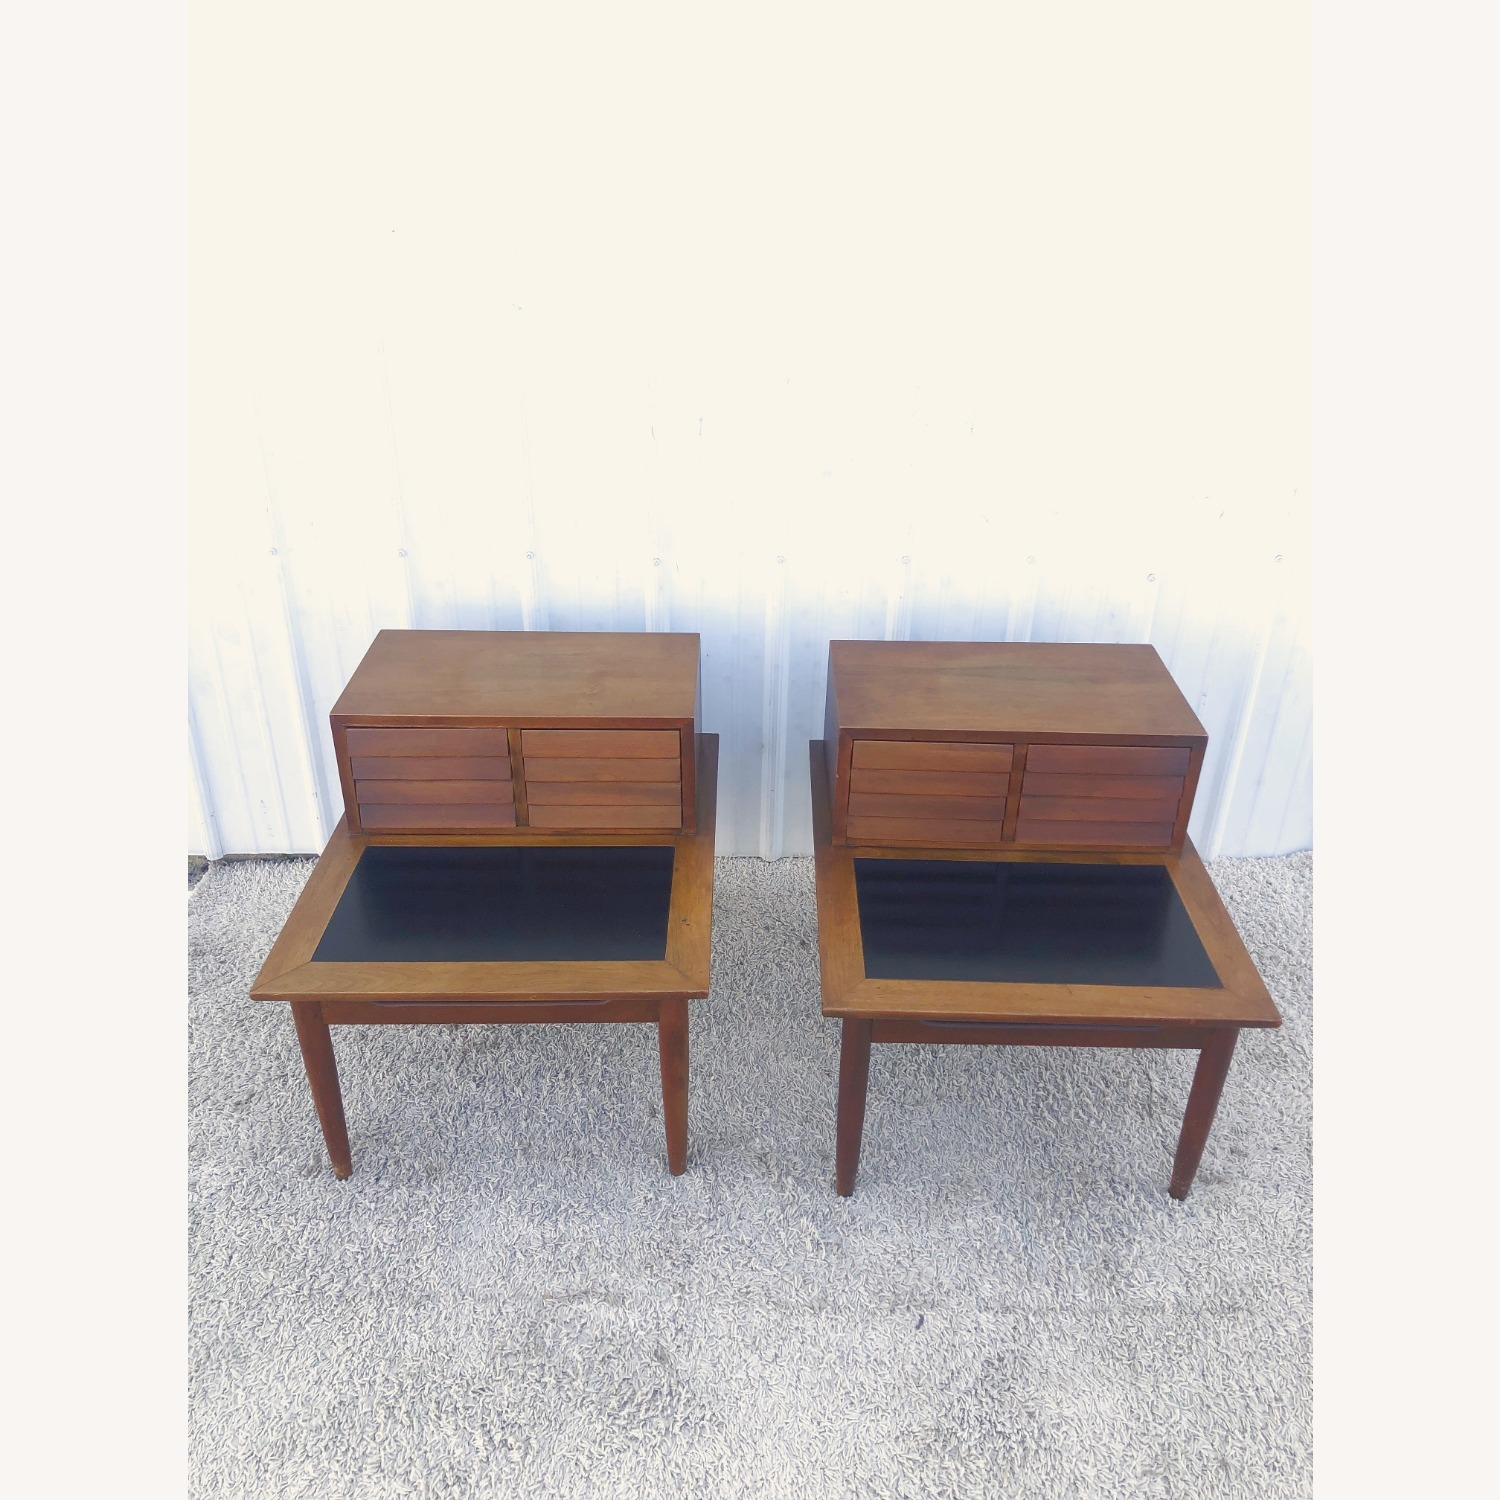 Pair Two Drawer MCM End Tables by Martinsvlle - image-3